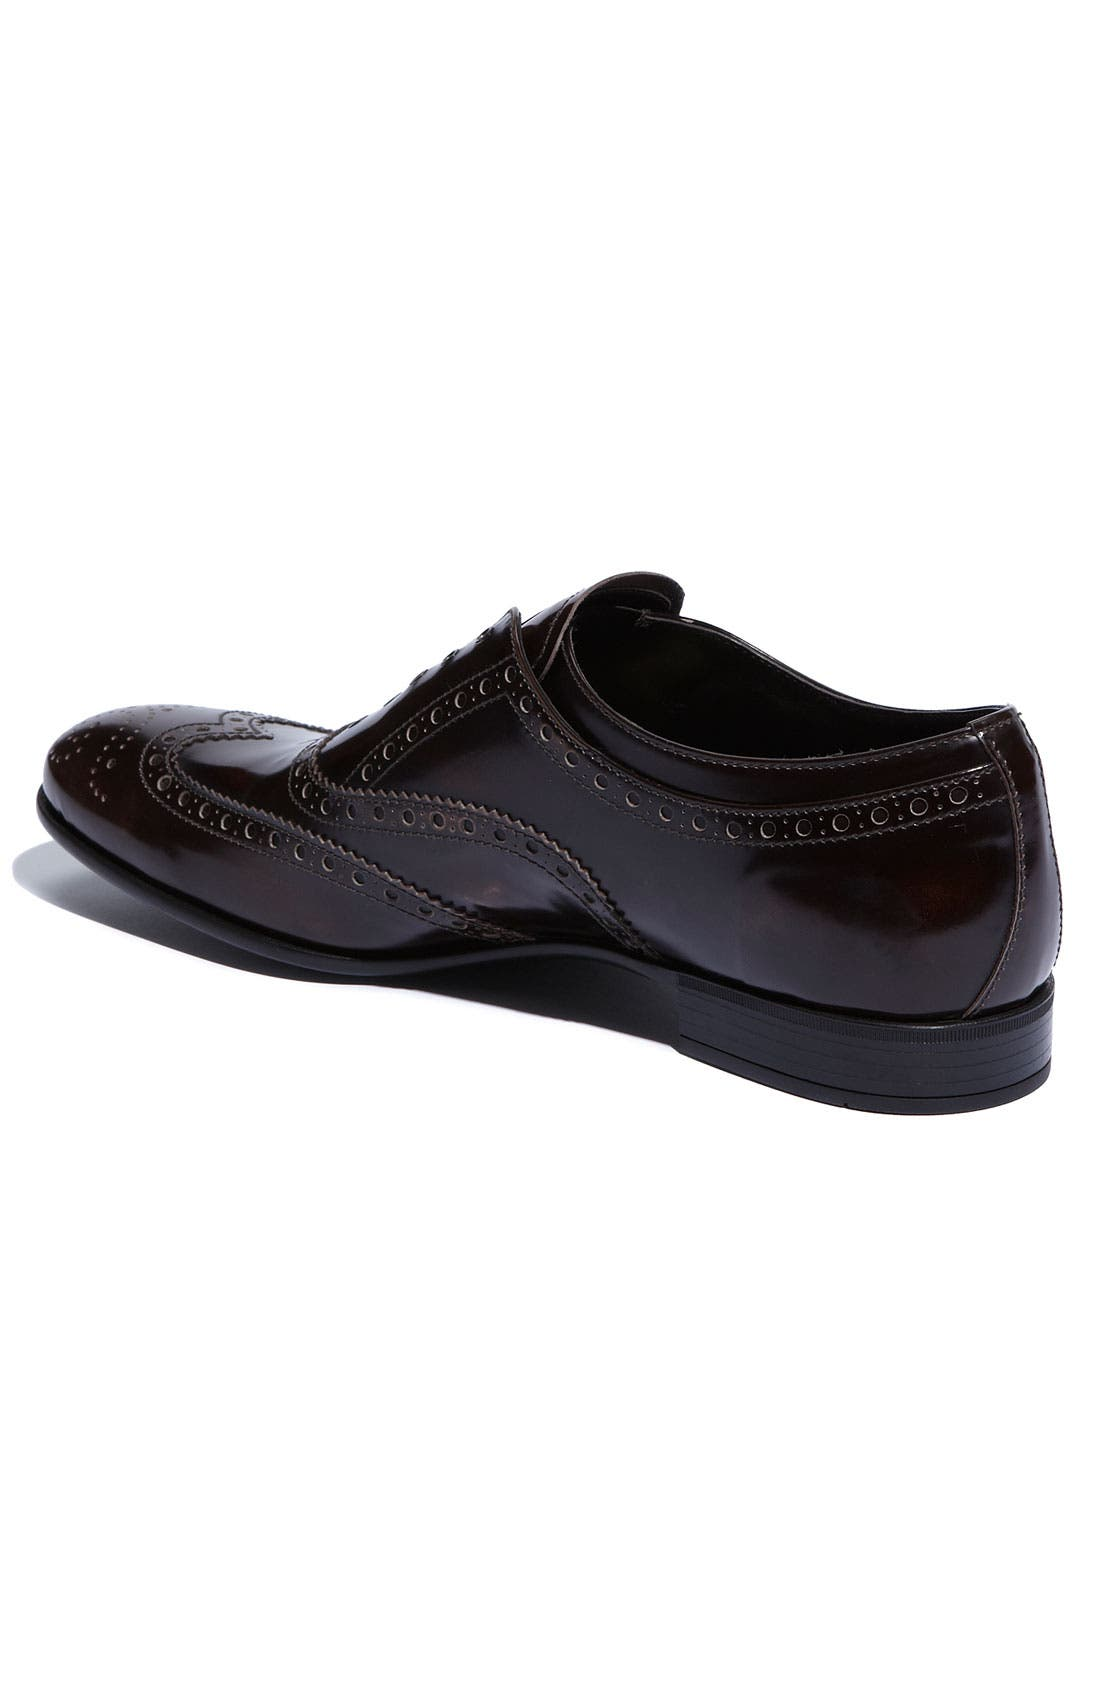 Alternate Image 2  - Prada Laceless Wingtip Oxford